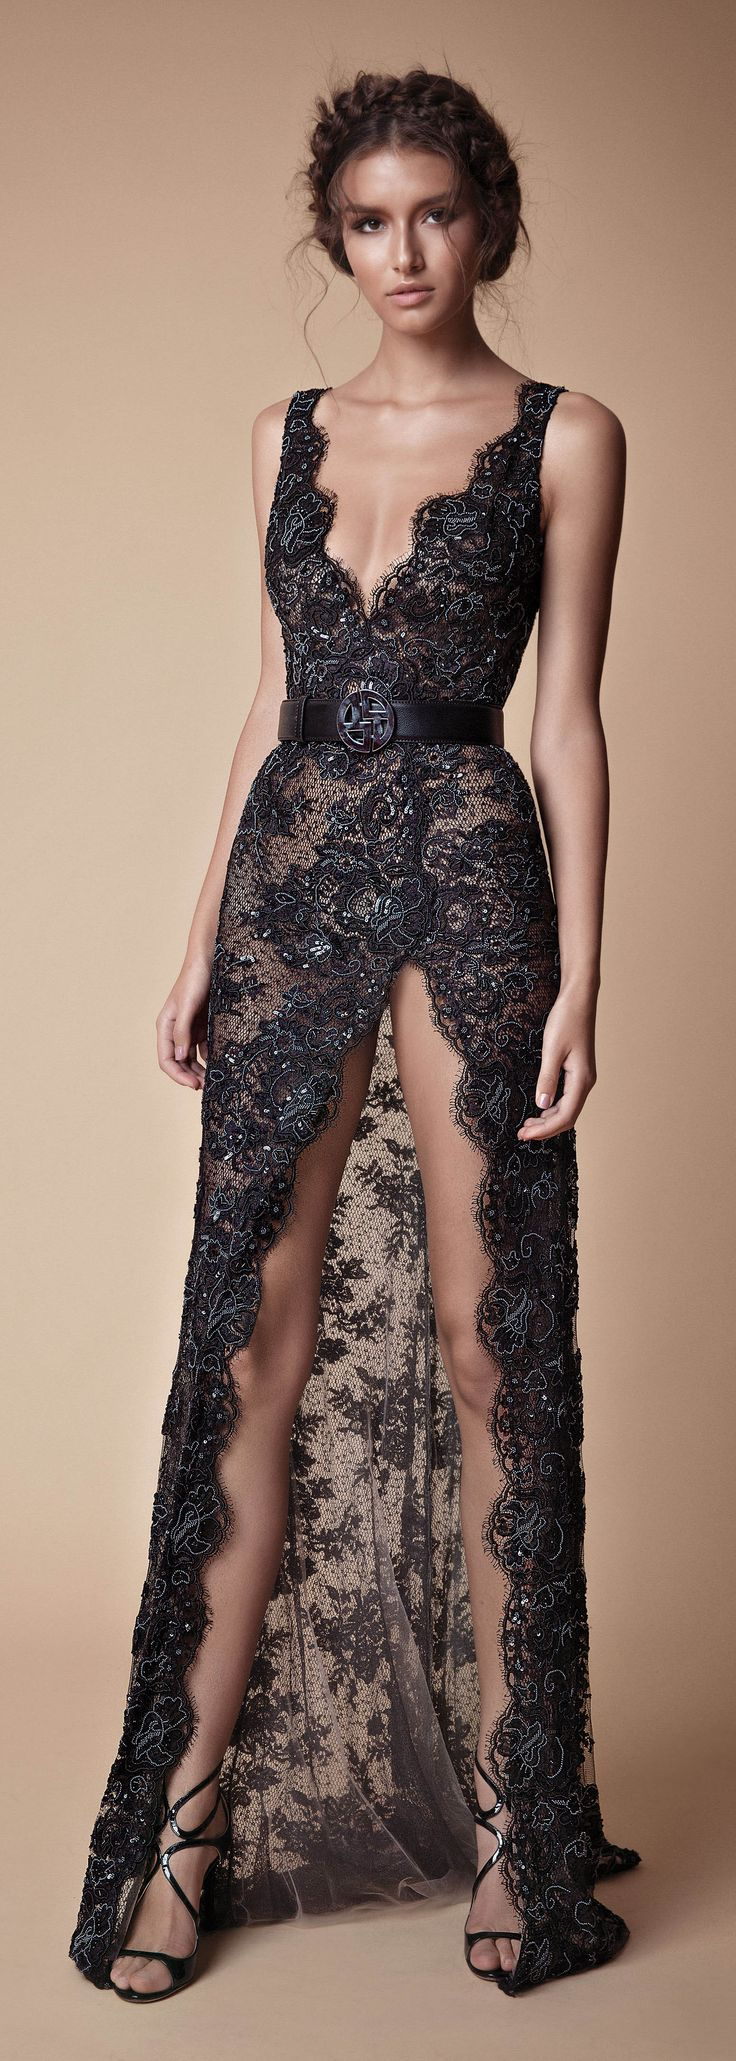 Sexy black lace evening gown by @berta